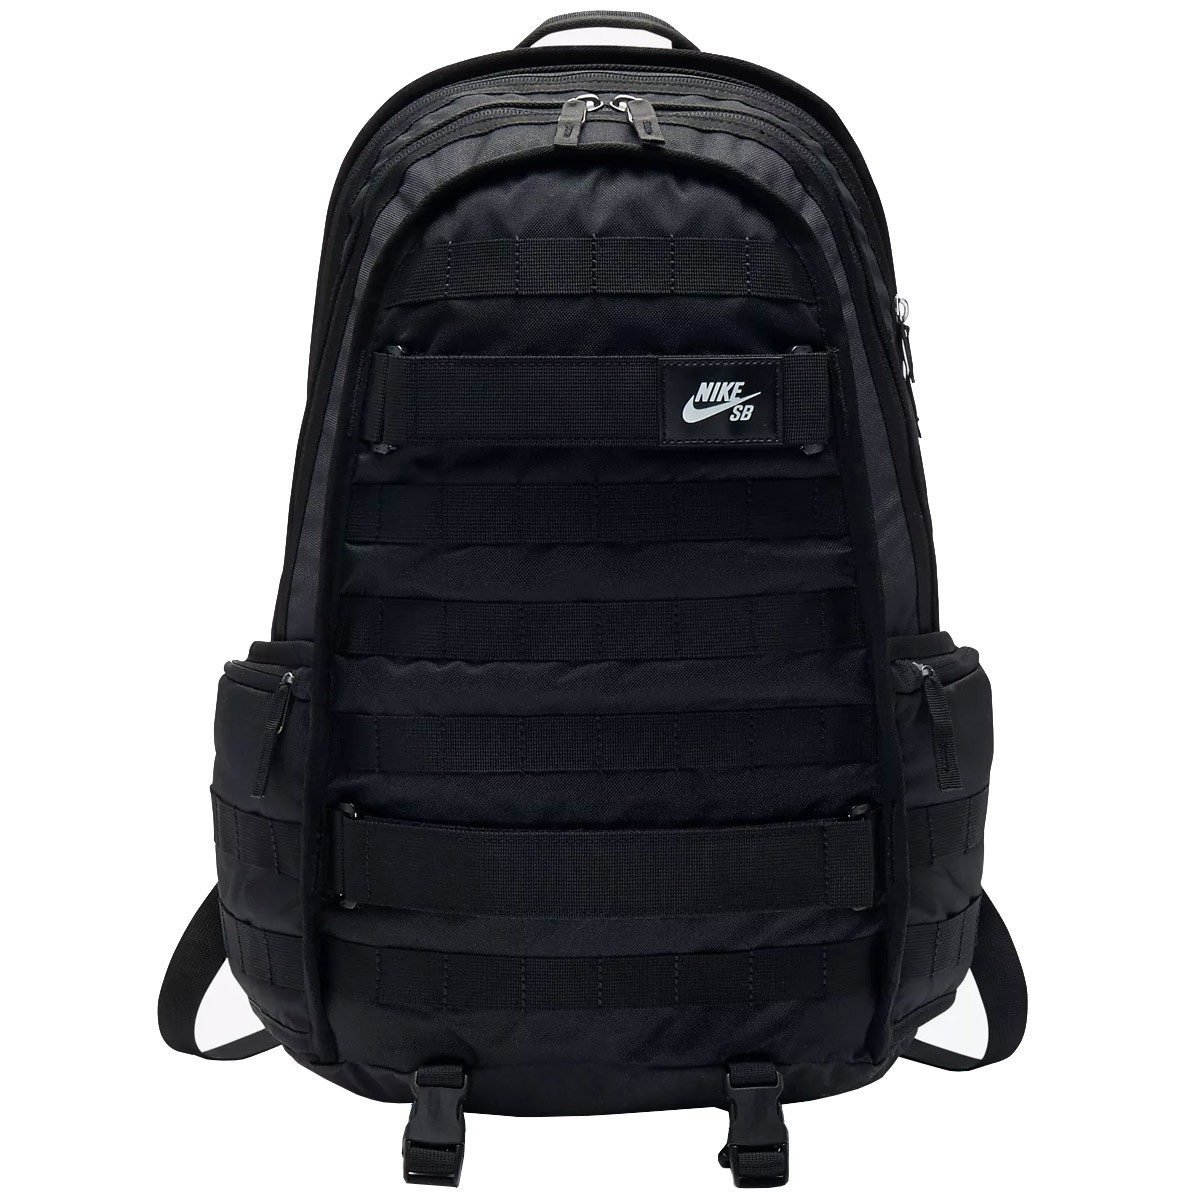 Sindicato fuego Banquete  Nike SB RPM Solid Backpack - Black/Black/Black